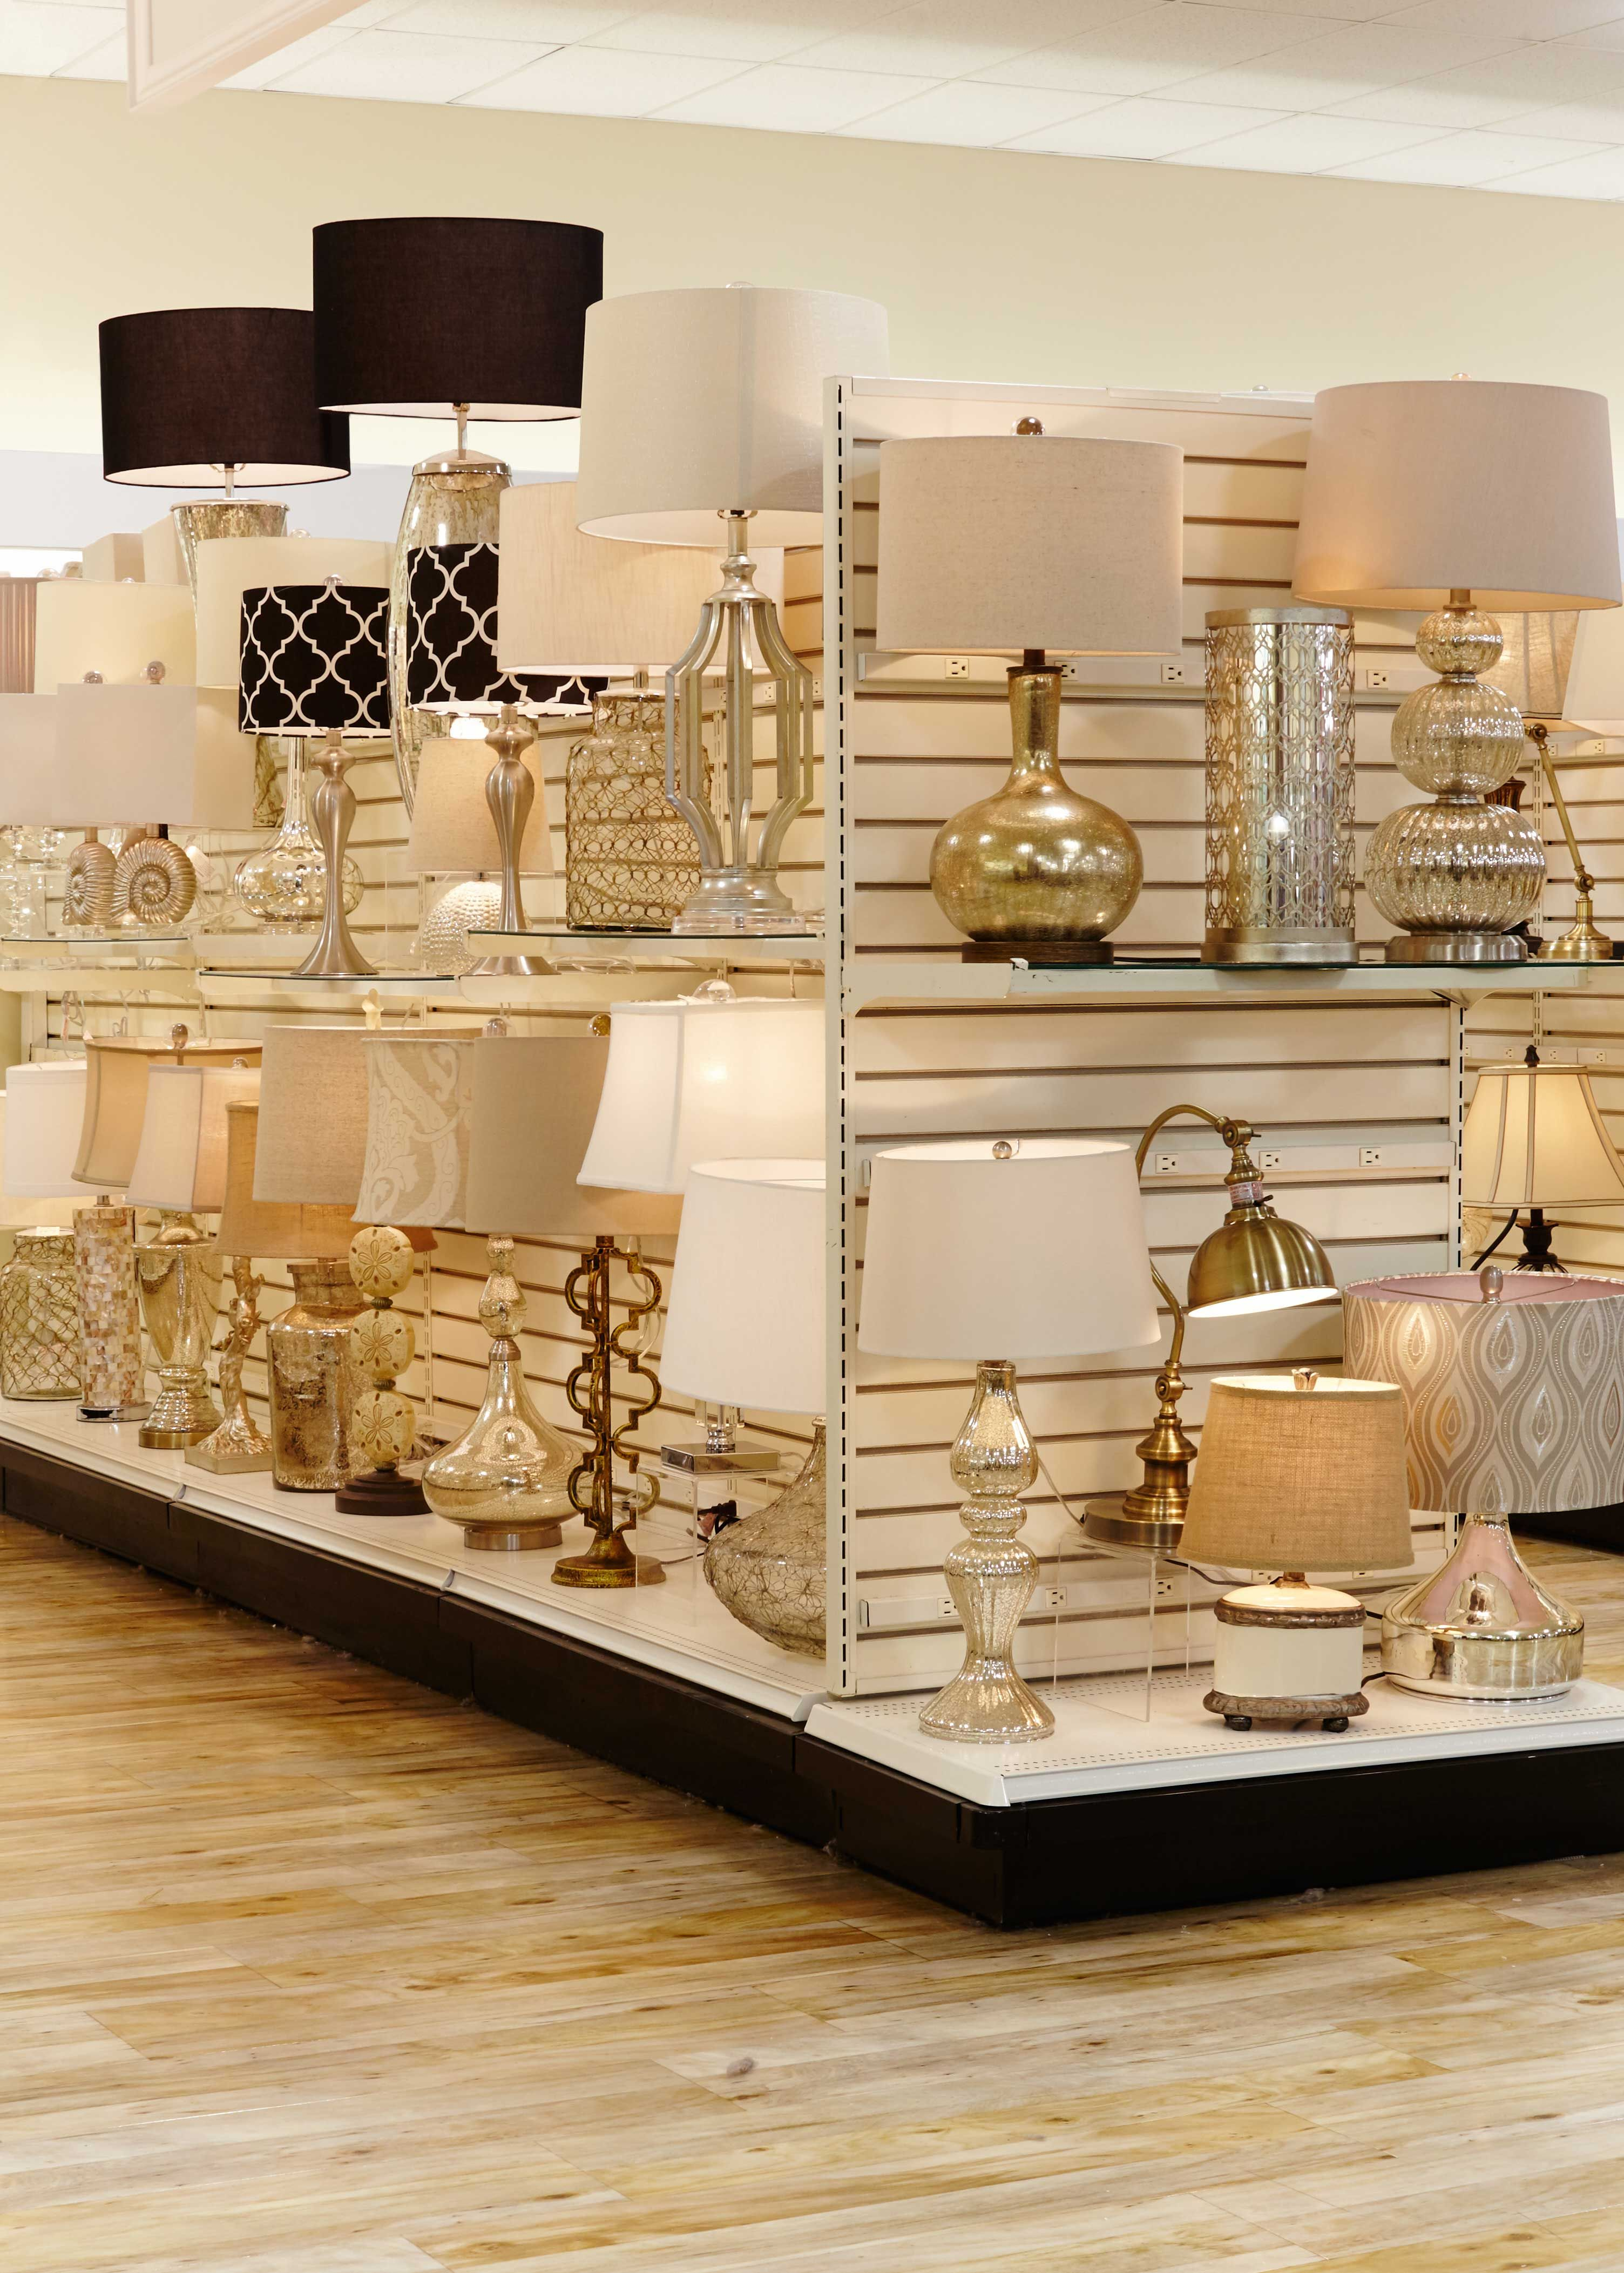 Home Goods Vestal Ny : goods, vestal, Things, Should, Before, Shopping, HomeGoods